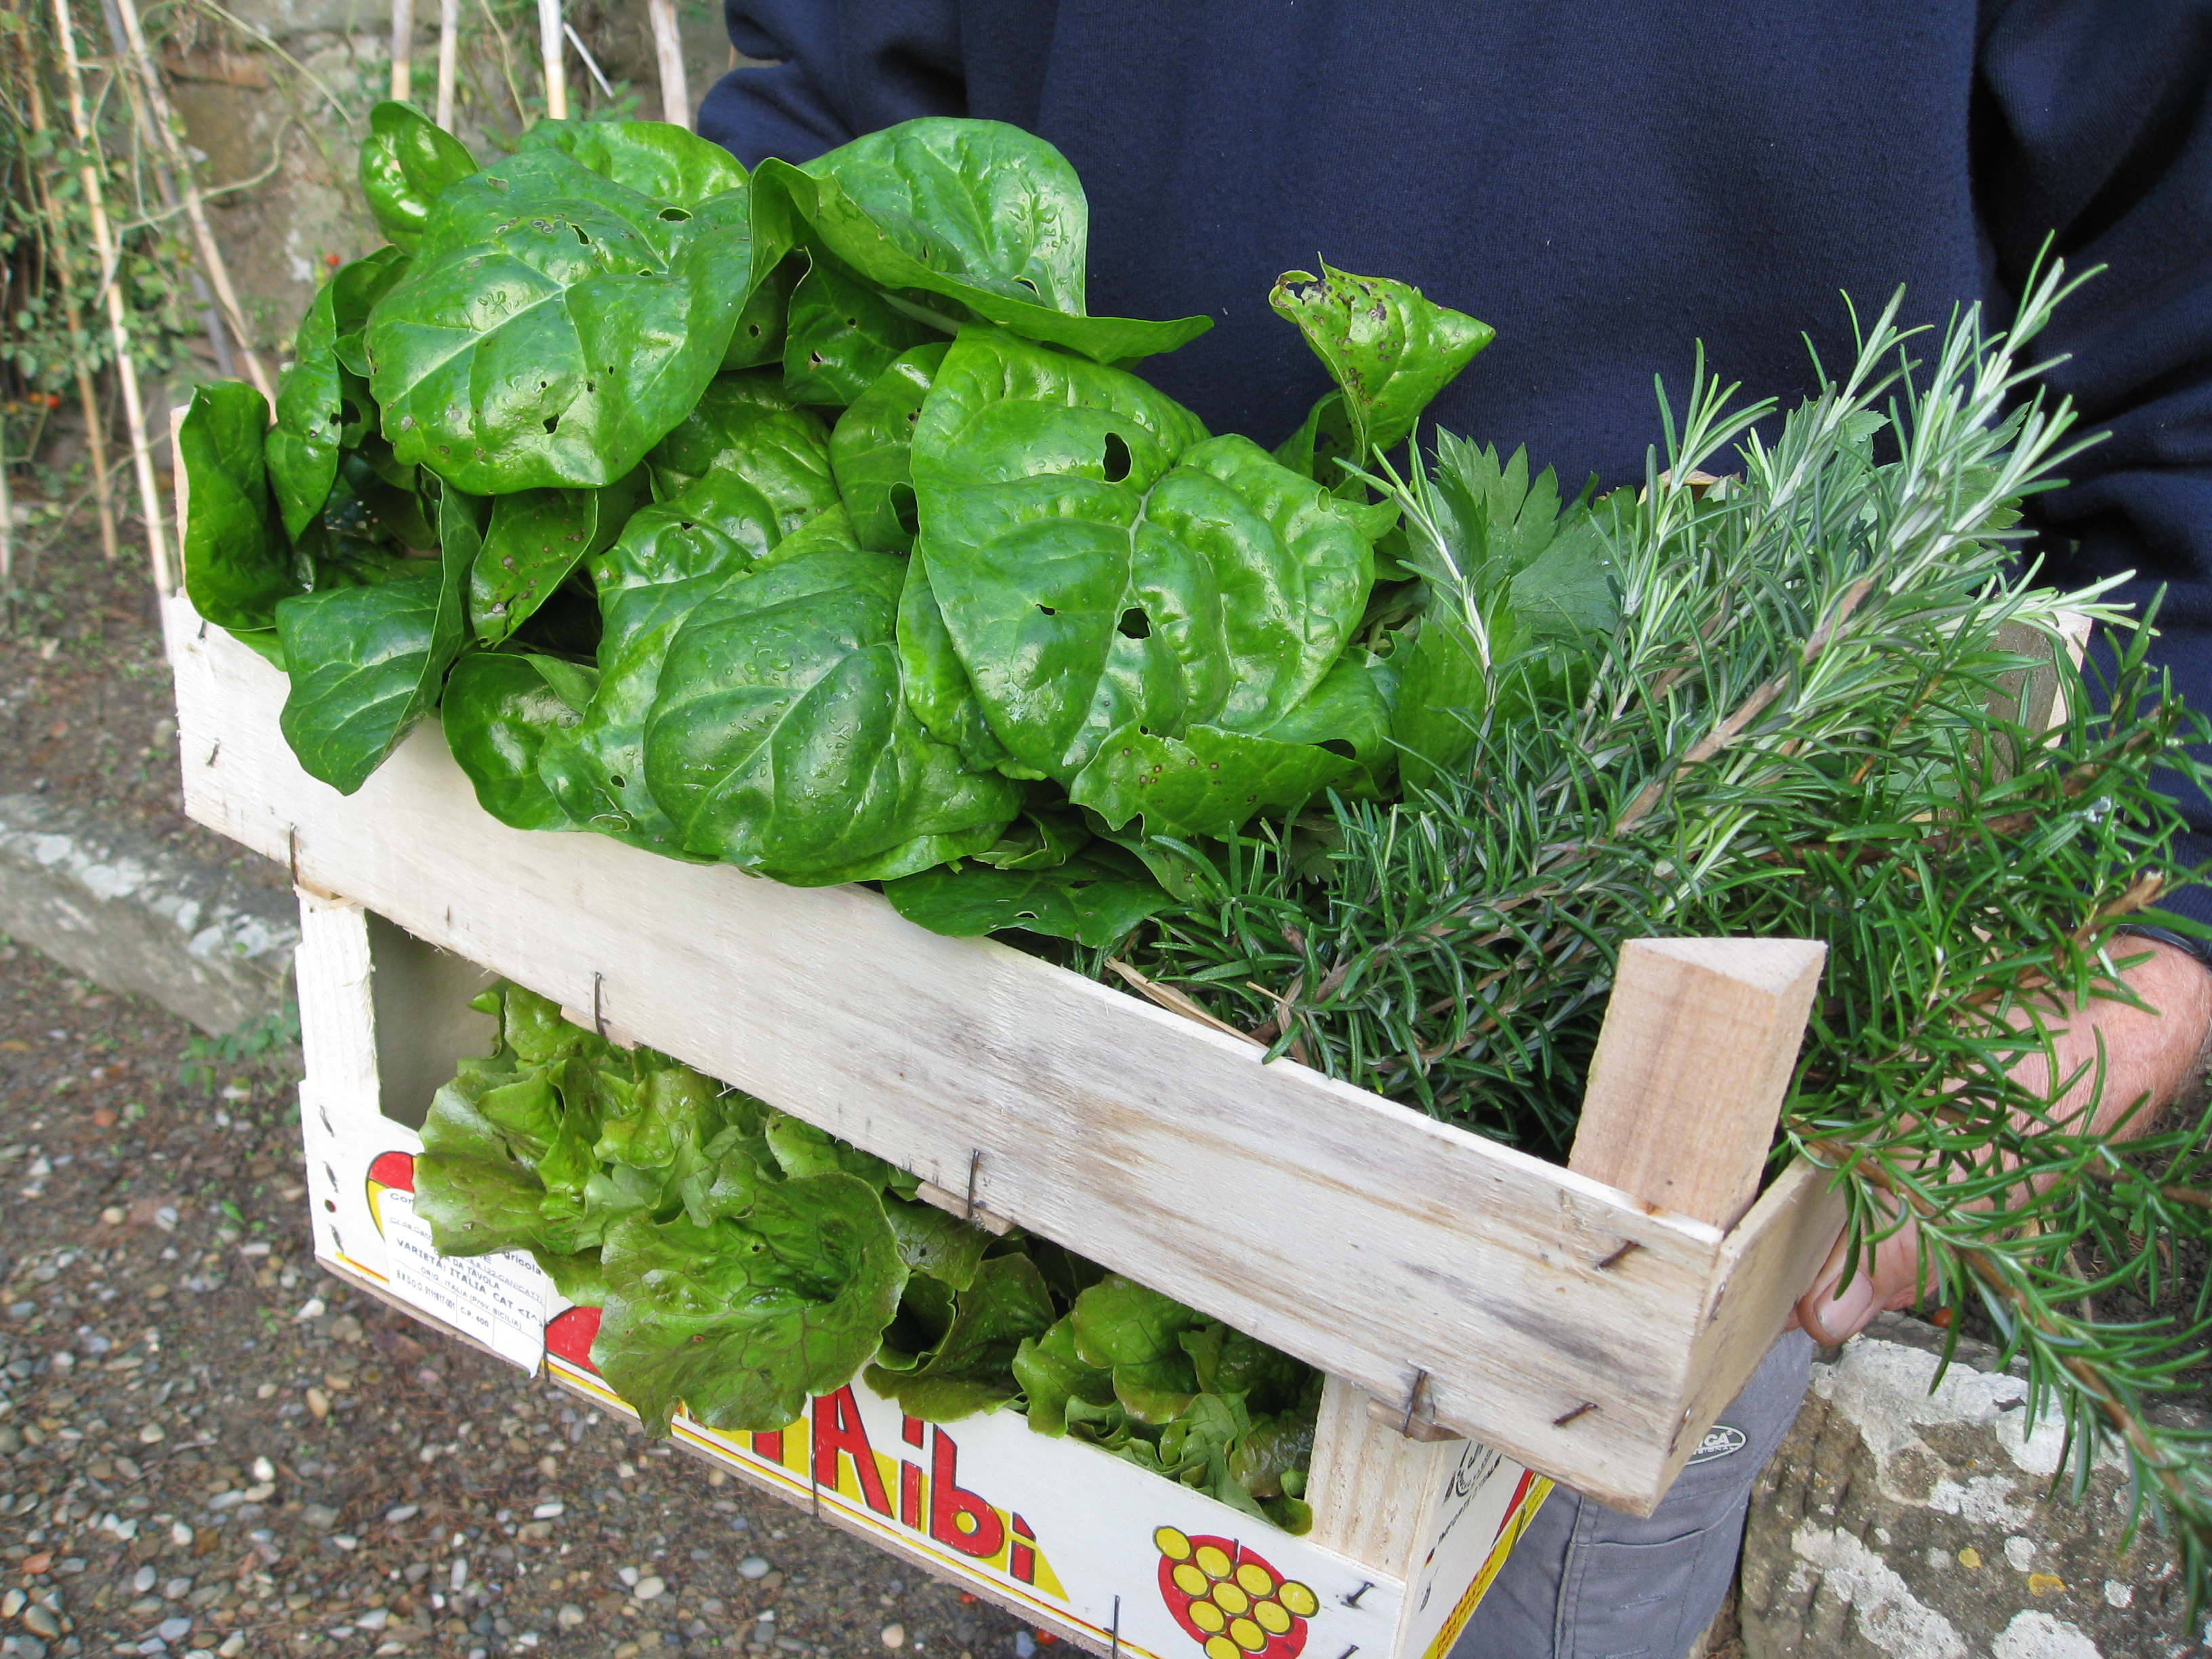 Fresh greens and herbs for the kitchen.